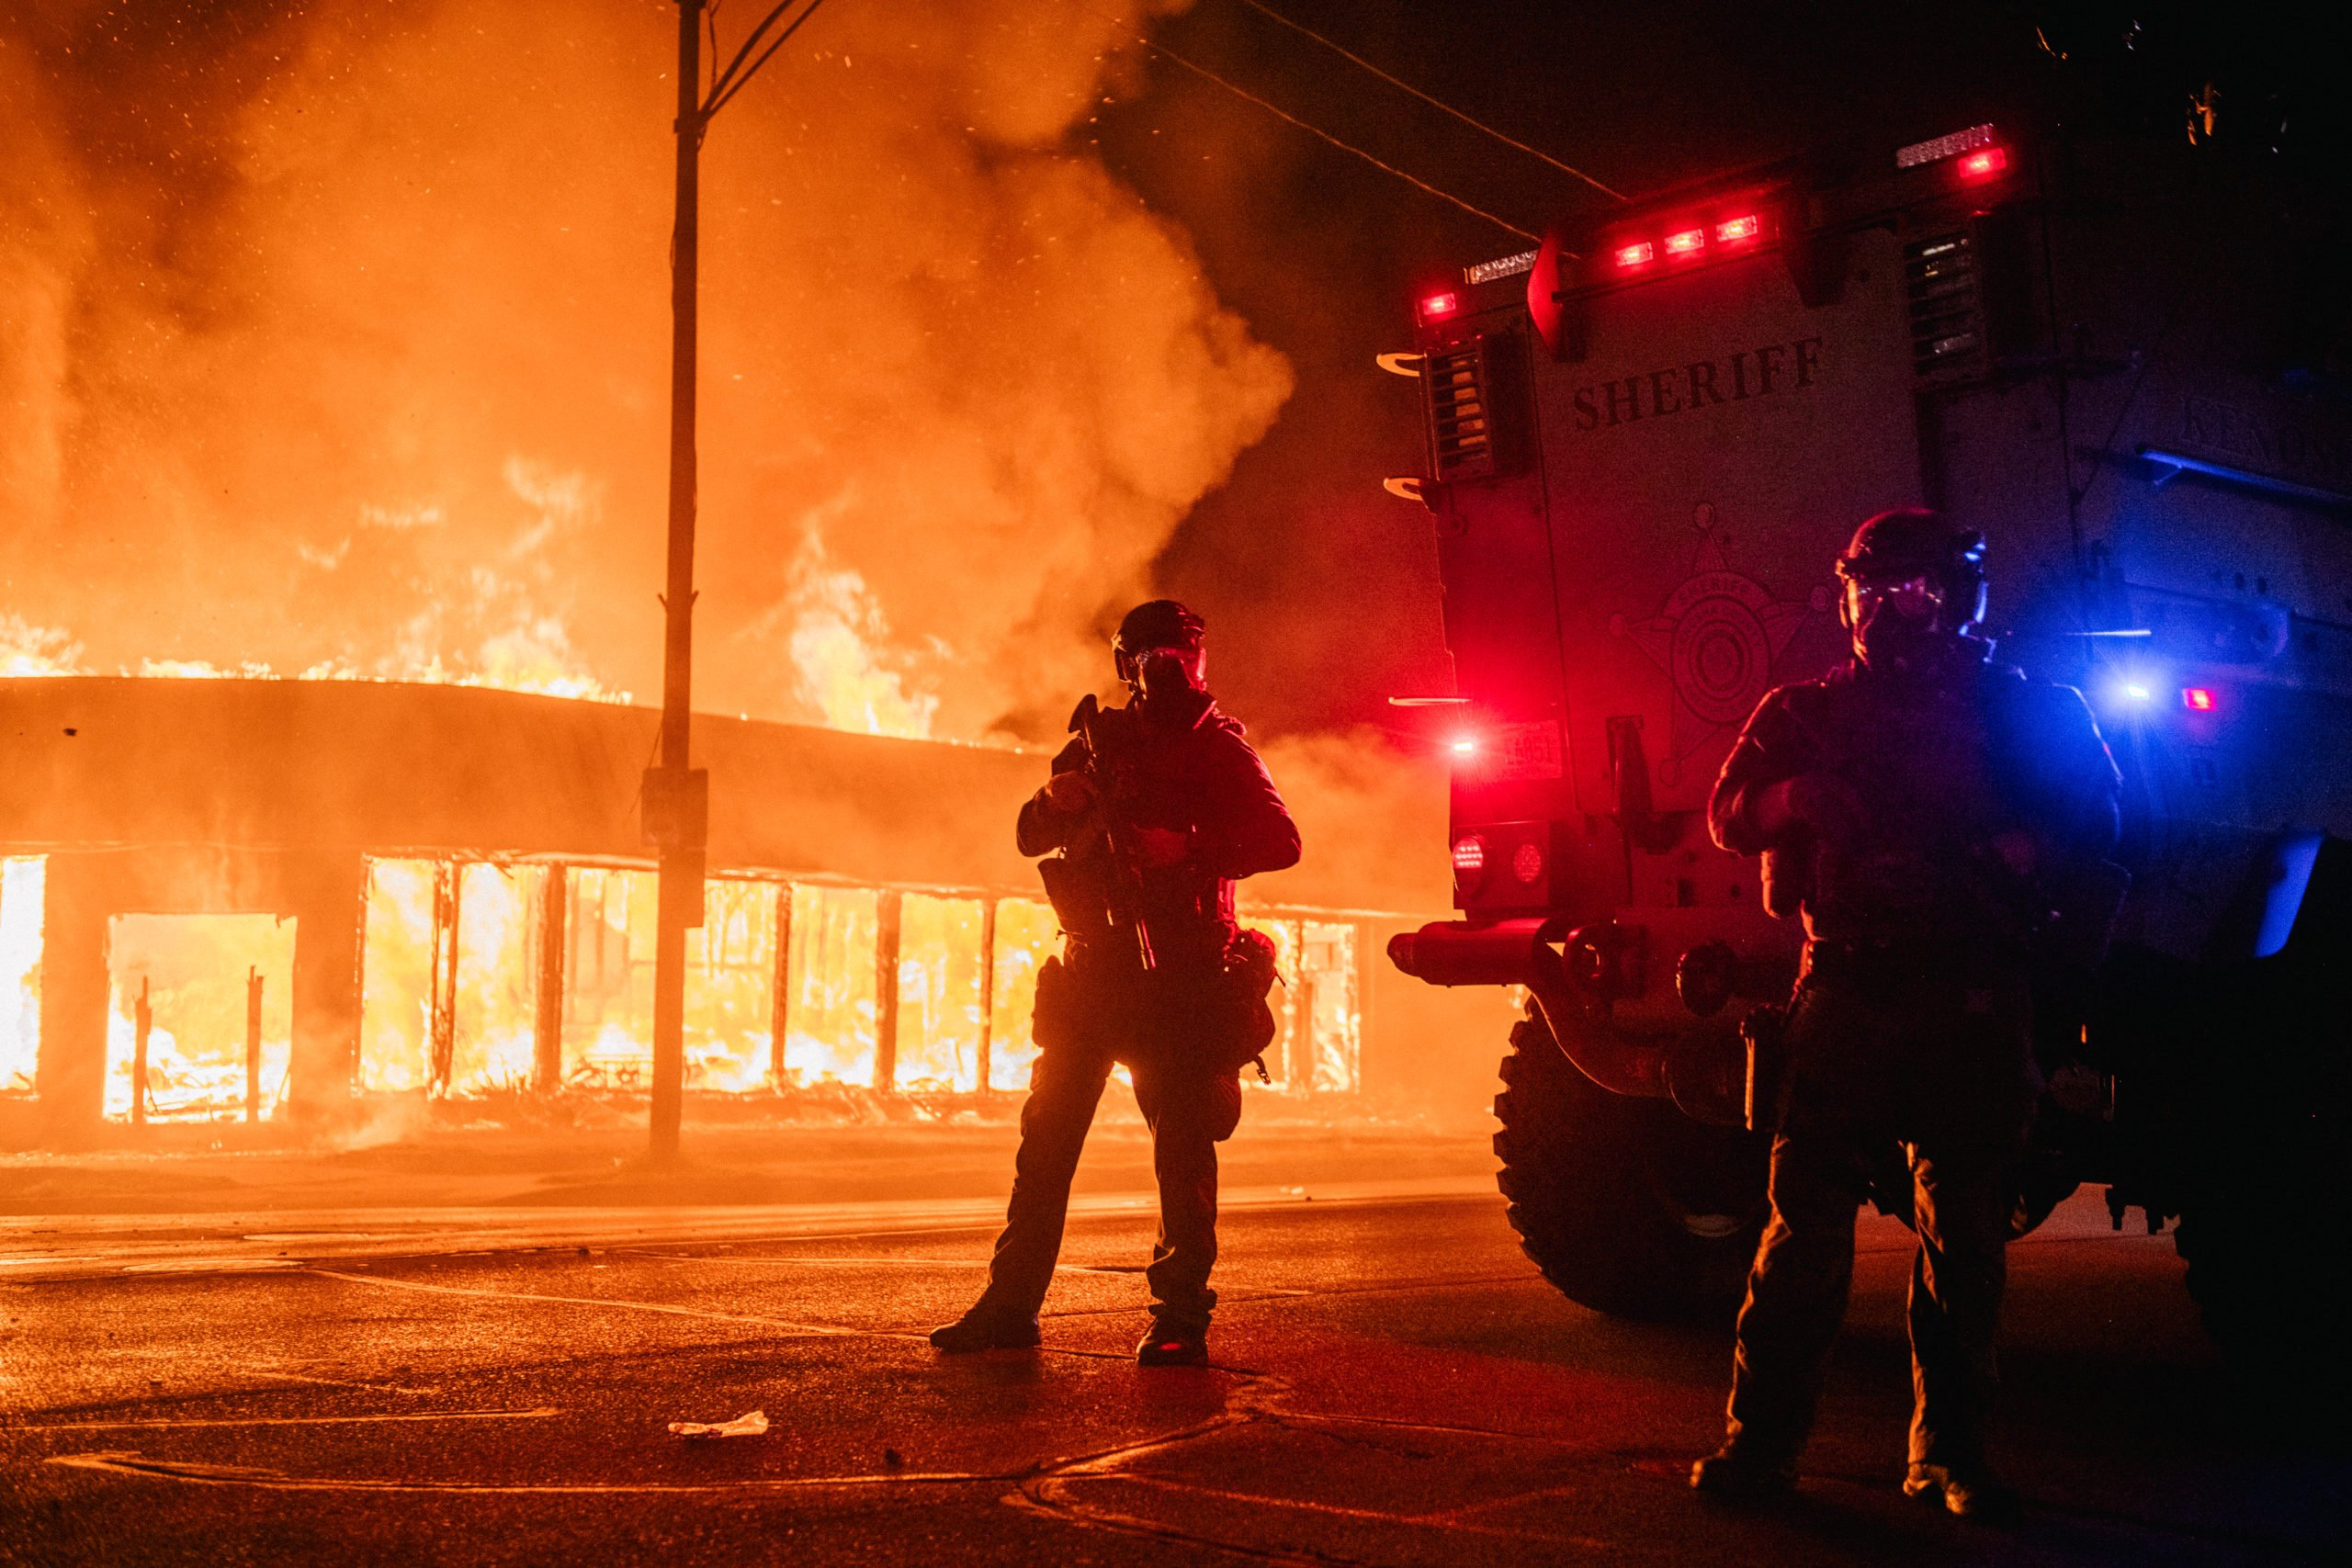 KENOSHA, WI - AUGUST 24: A police armored vehicle patrols an intersection on August 24, 2020 in Kenosha, Wisconsin. This is the second night of rioting after the shooting of Jacob Blake, 29, on August 23. Blake was shot multiple times in the back by Wisconsin police officers after attempting to enter into the drivers side of a vehicle. (Photo by Brandon Bell/Getty Images)